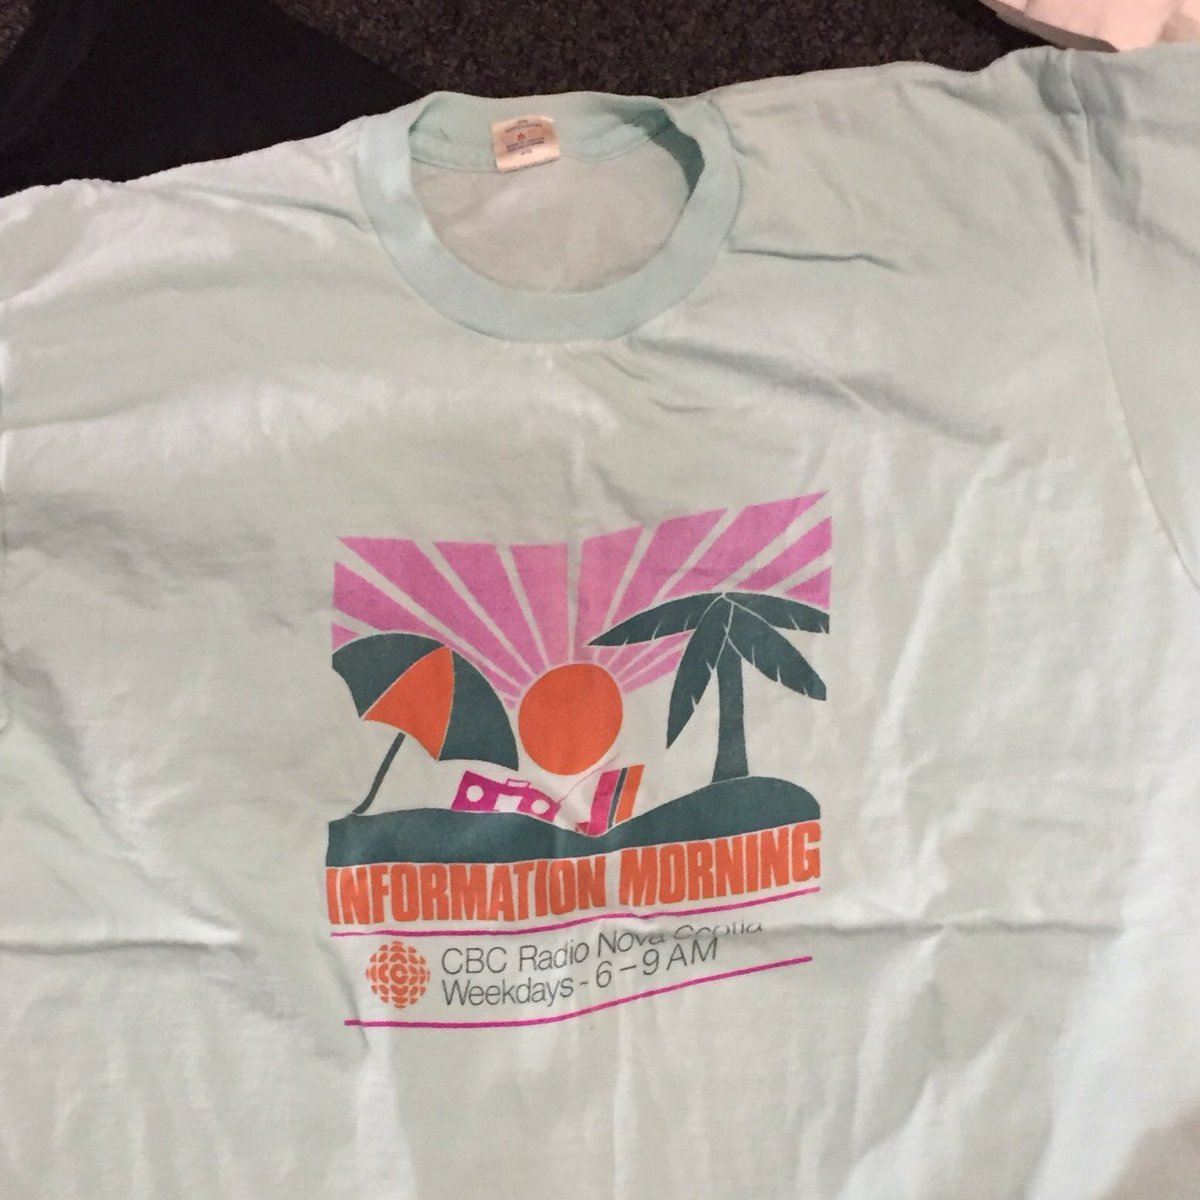 88273422864c8 Cbc T Shirts Retro – EDGE Engineering and Consulting Limited